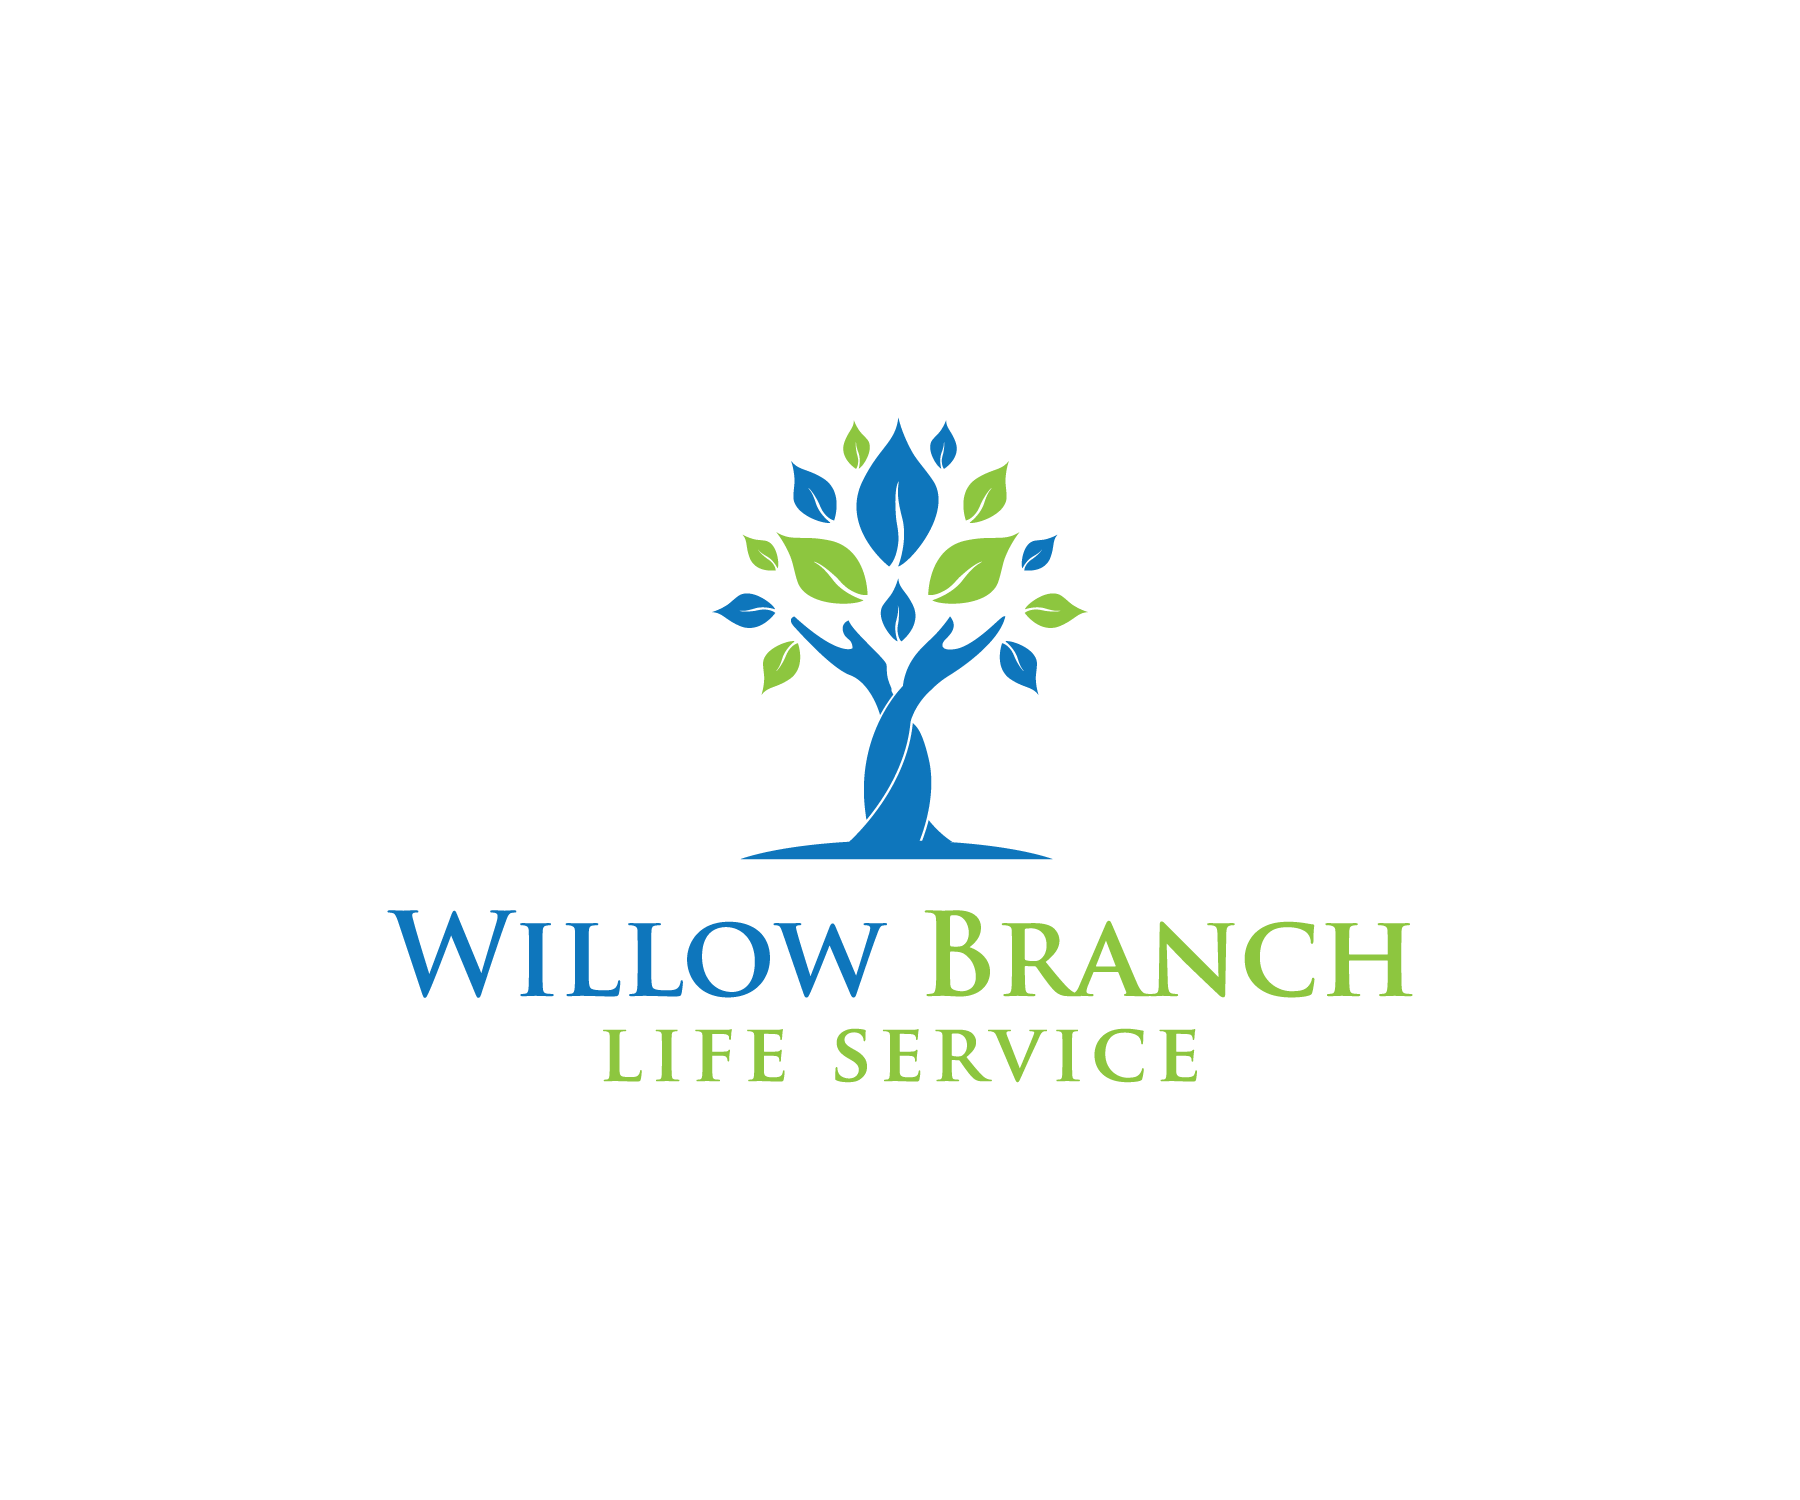 Logo Design by Nazmul Islam - Entry No. 357 in the Logo Design Contest Artistic Logo Design for Willow Branch Life Service.